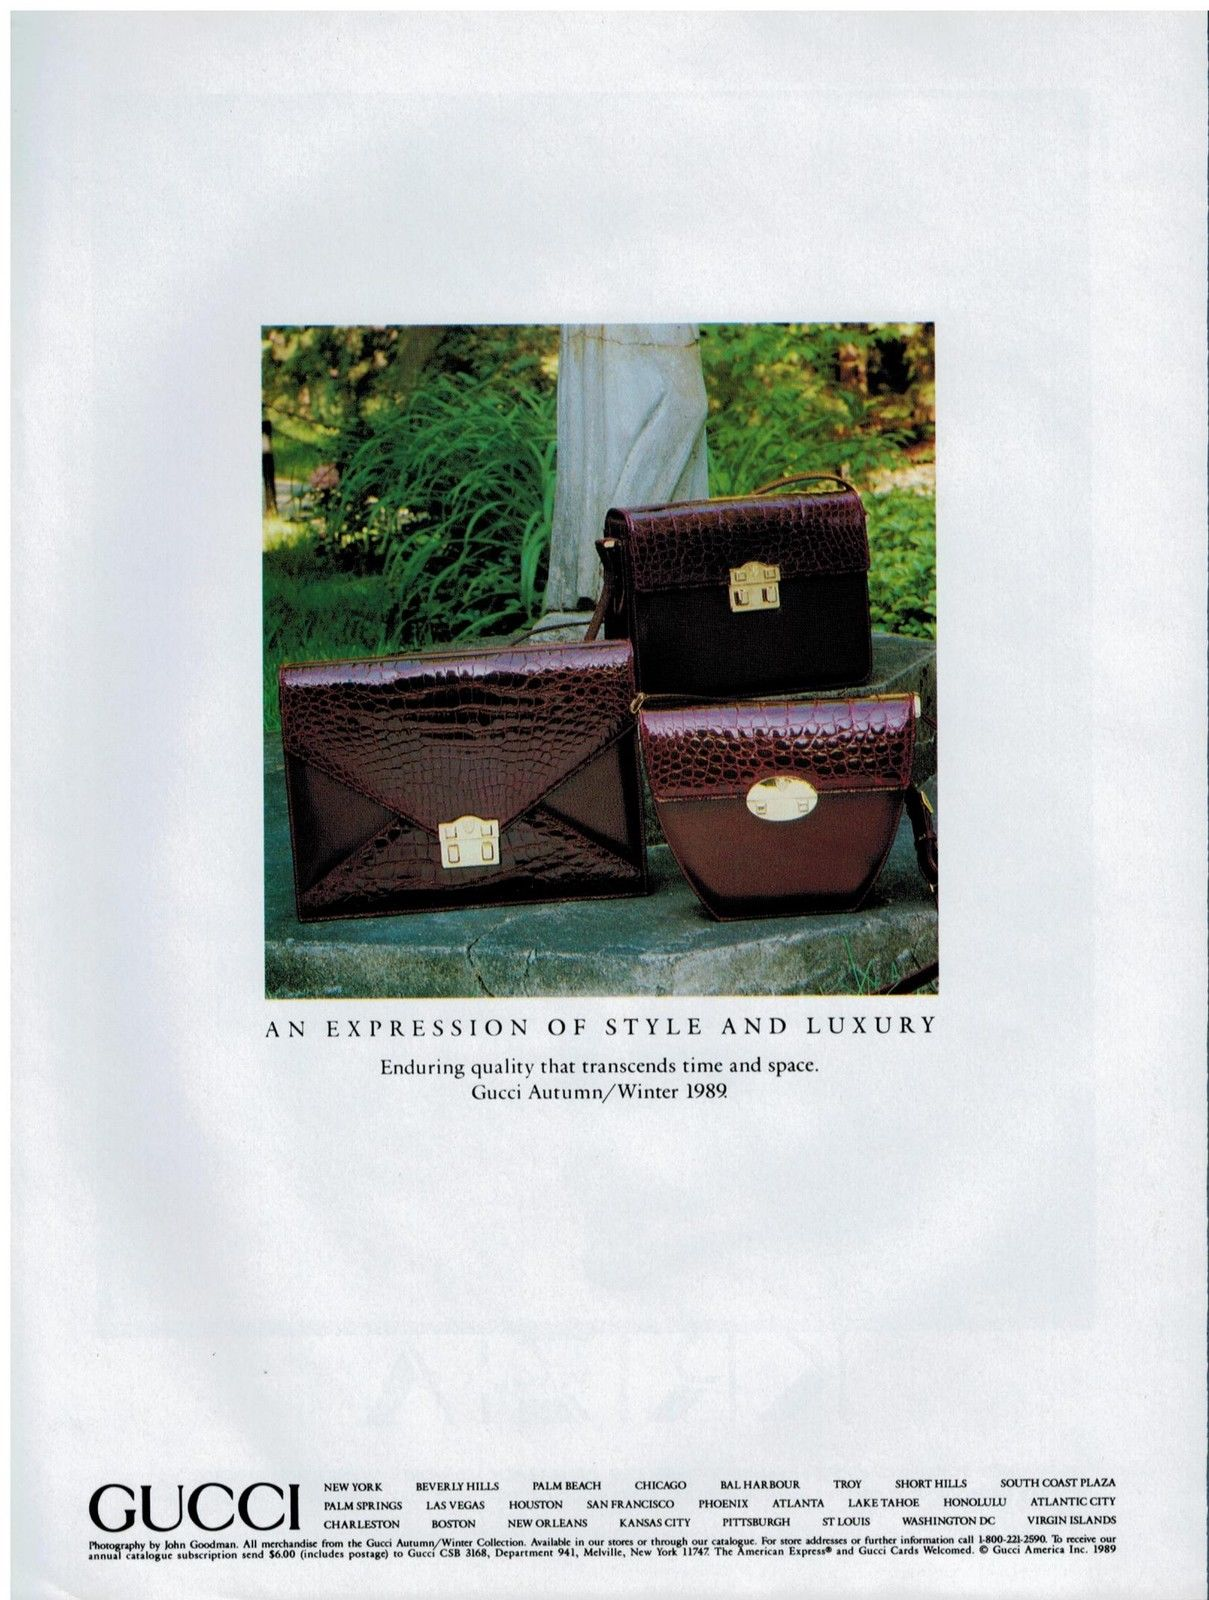 1989 Gucci Fall Winter exotic leather bags print ad - Vintage Gucci advertising campaigns archive